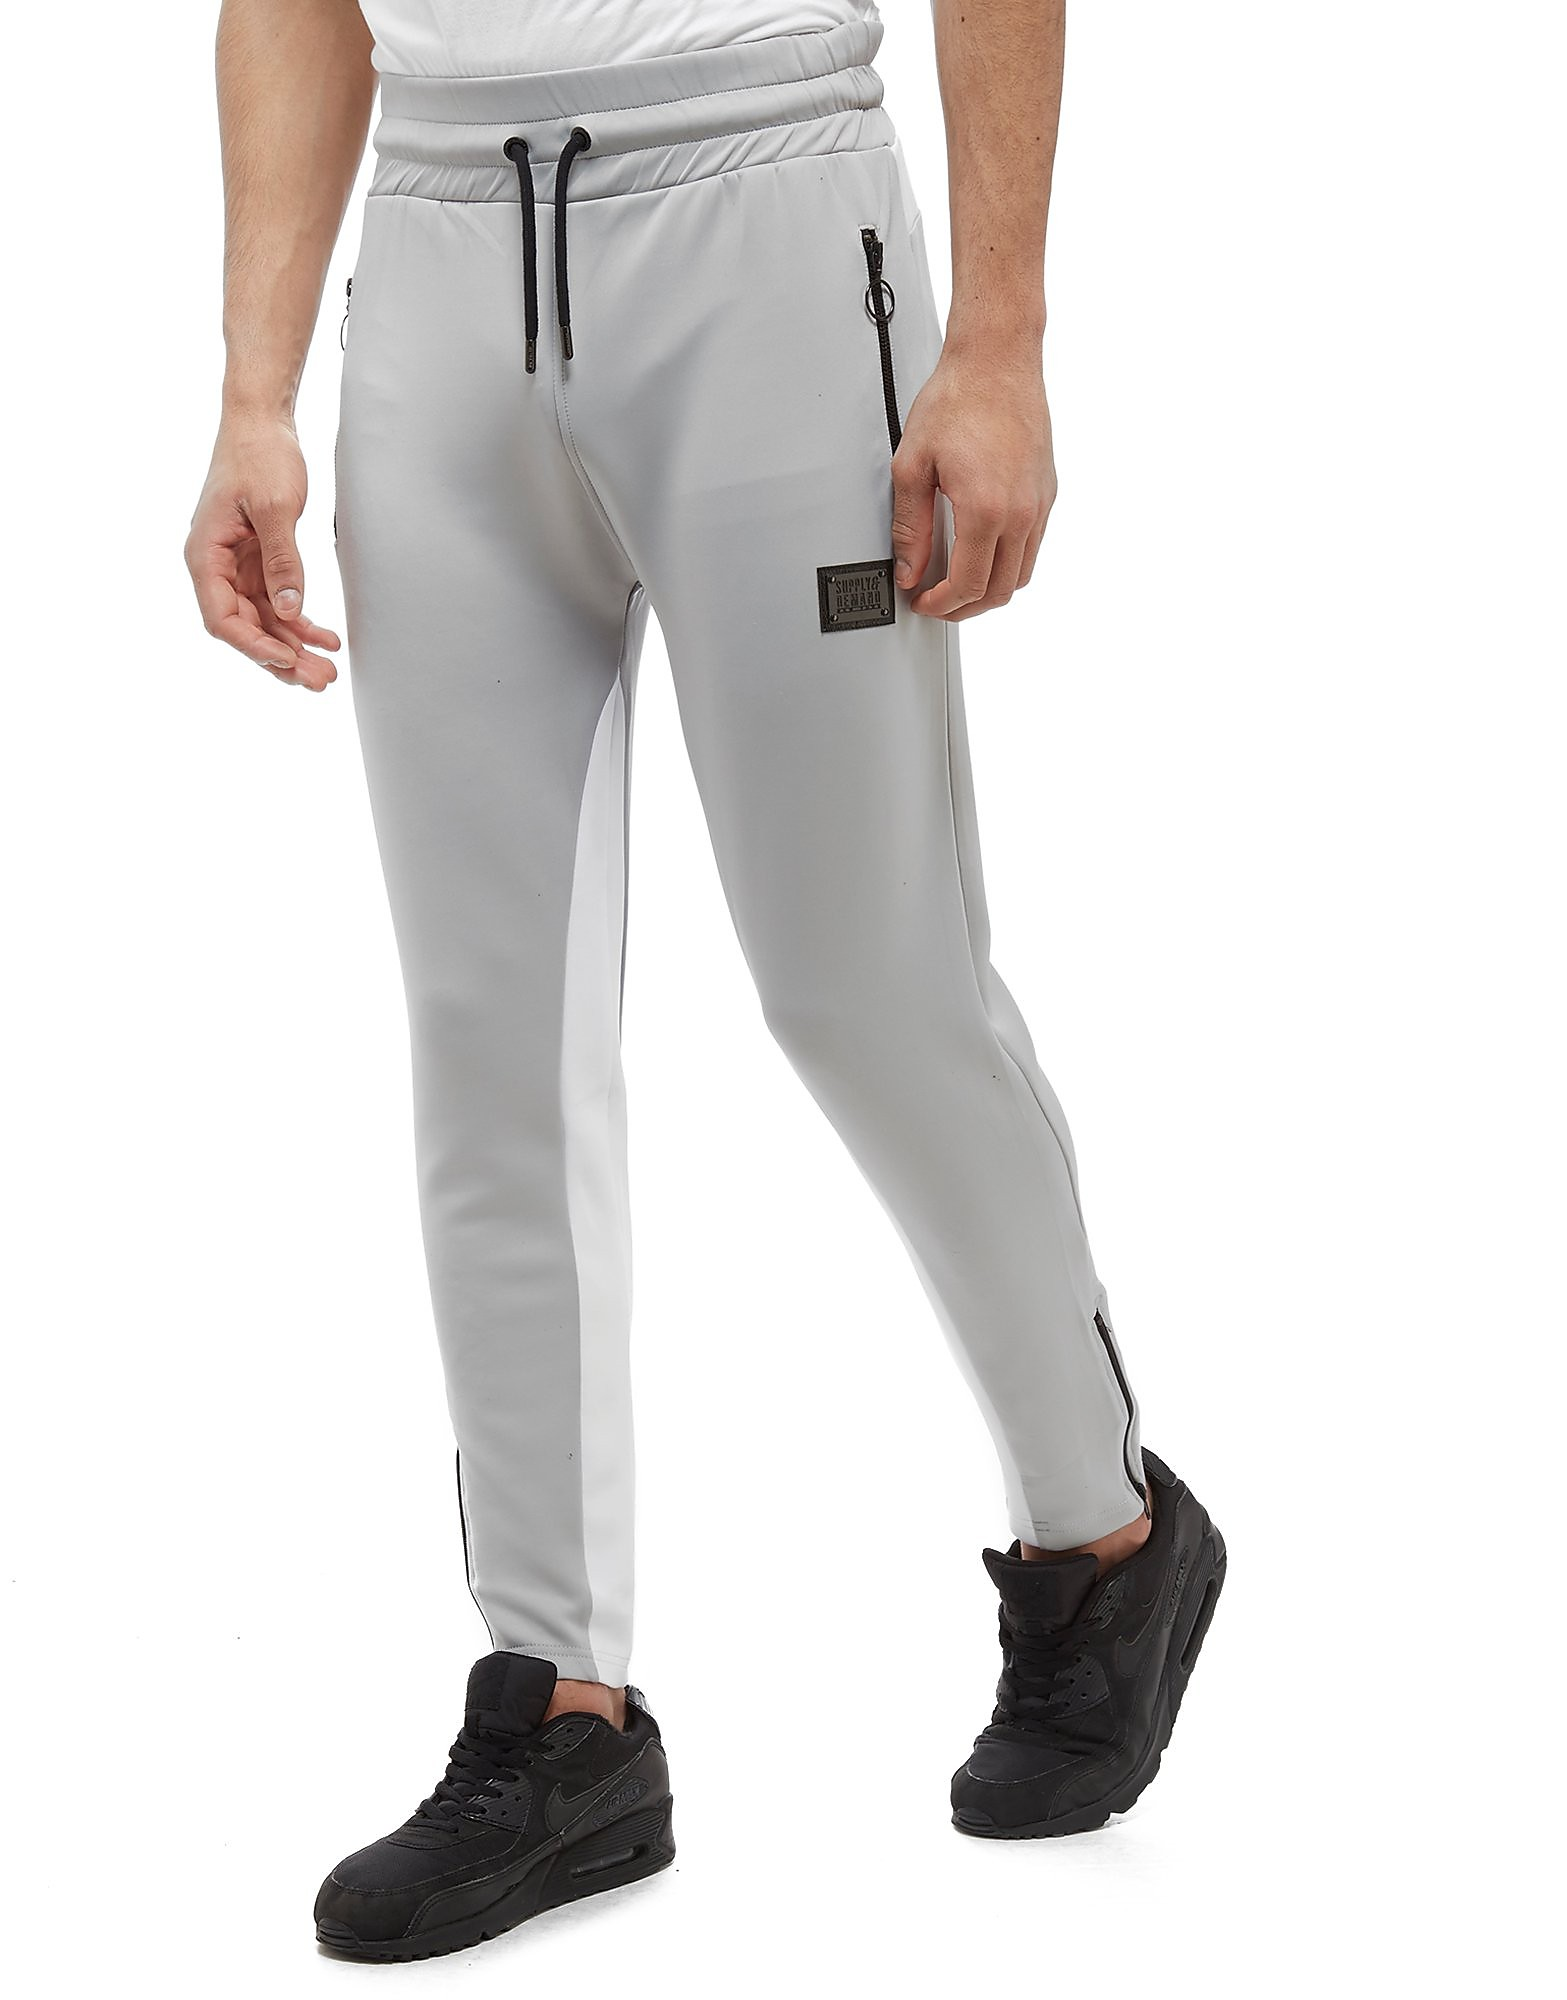 Supply & Demand Pantalon de suvêtement Alaska Joggers Homme - Gris, Gris